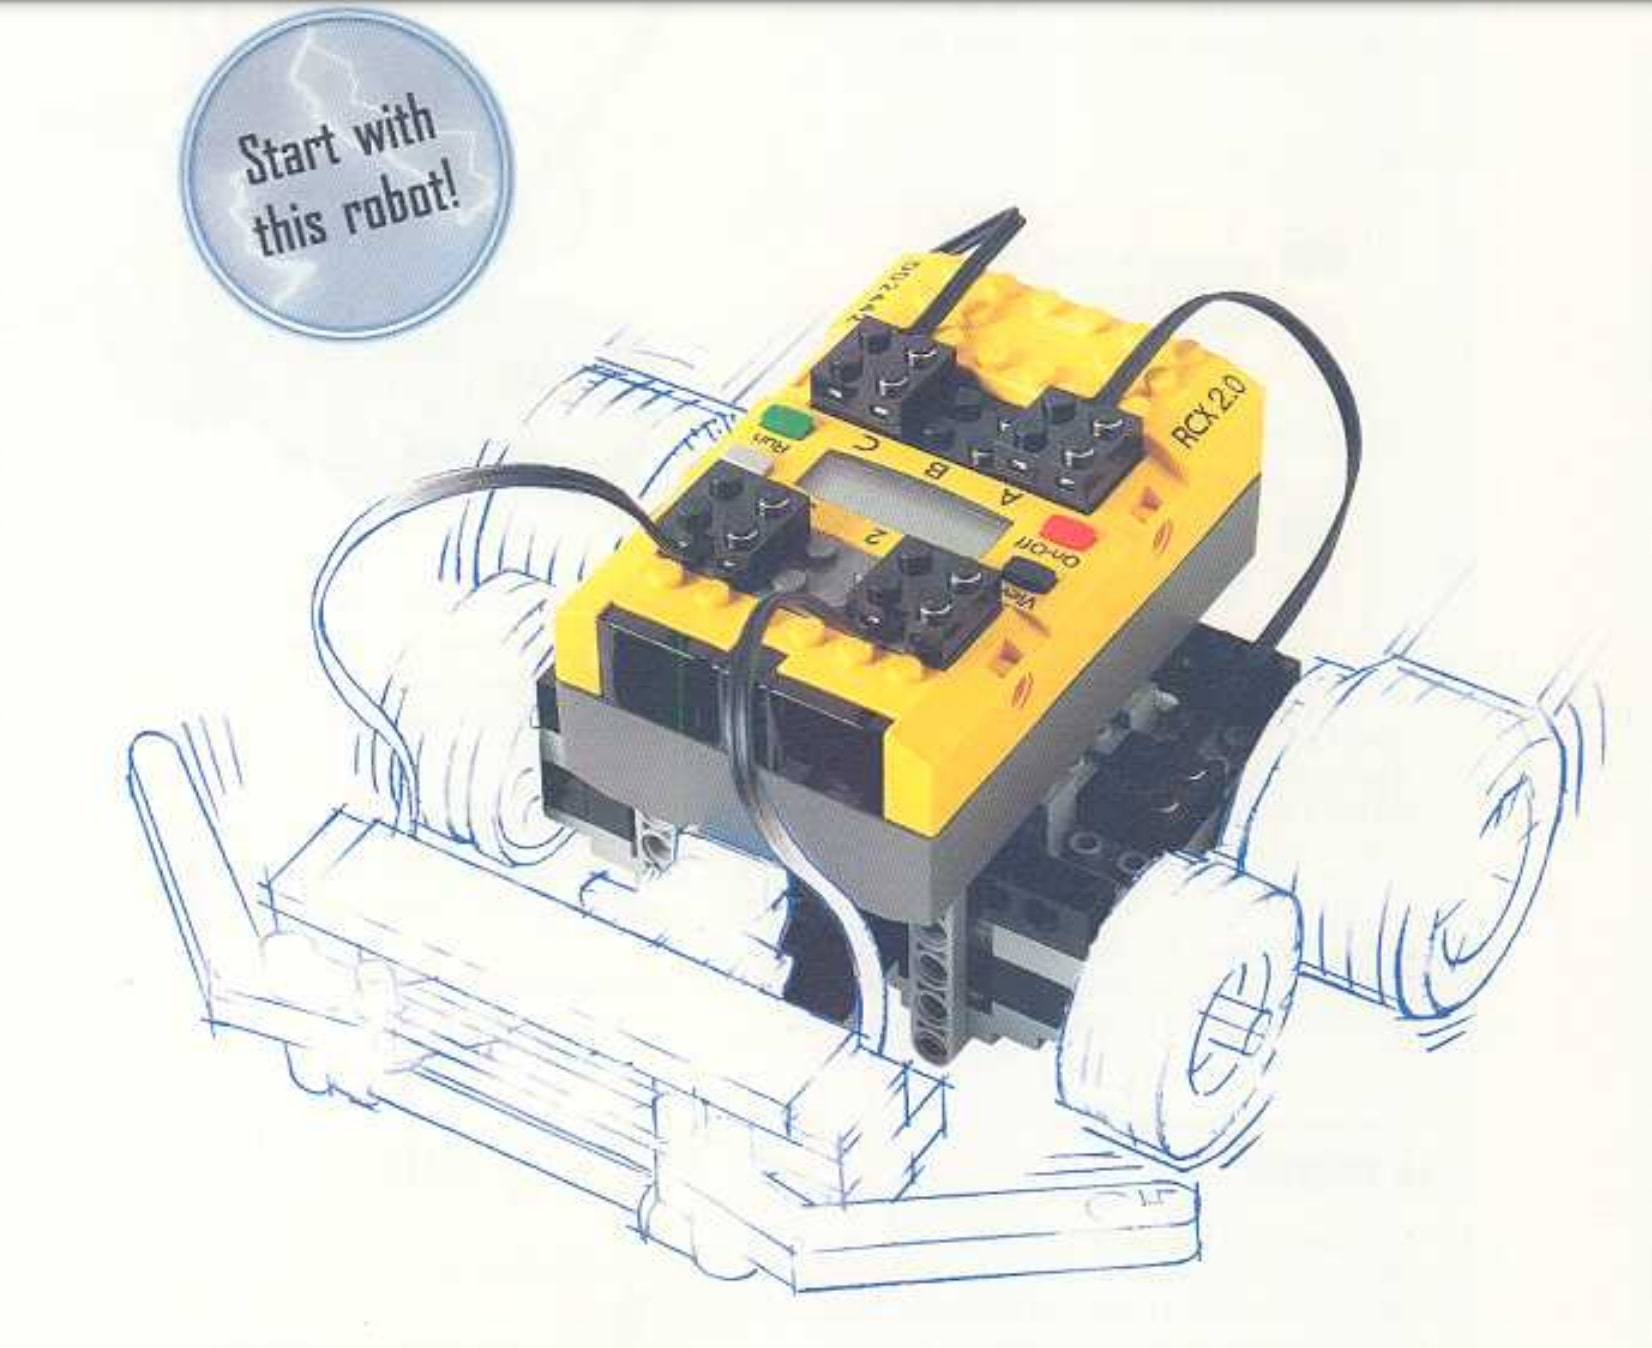 An image of a Lego Mindstorm.